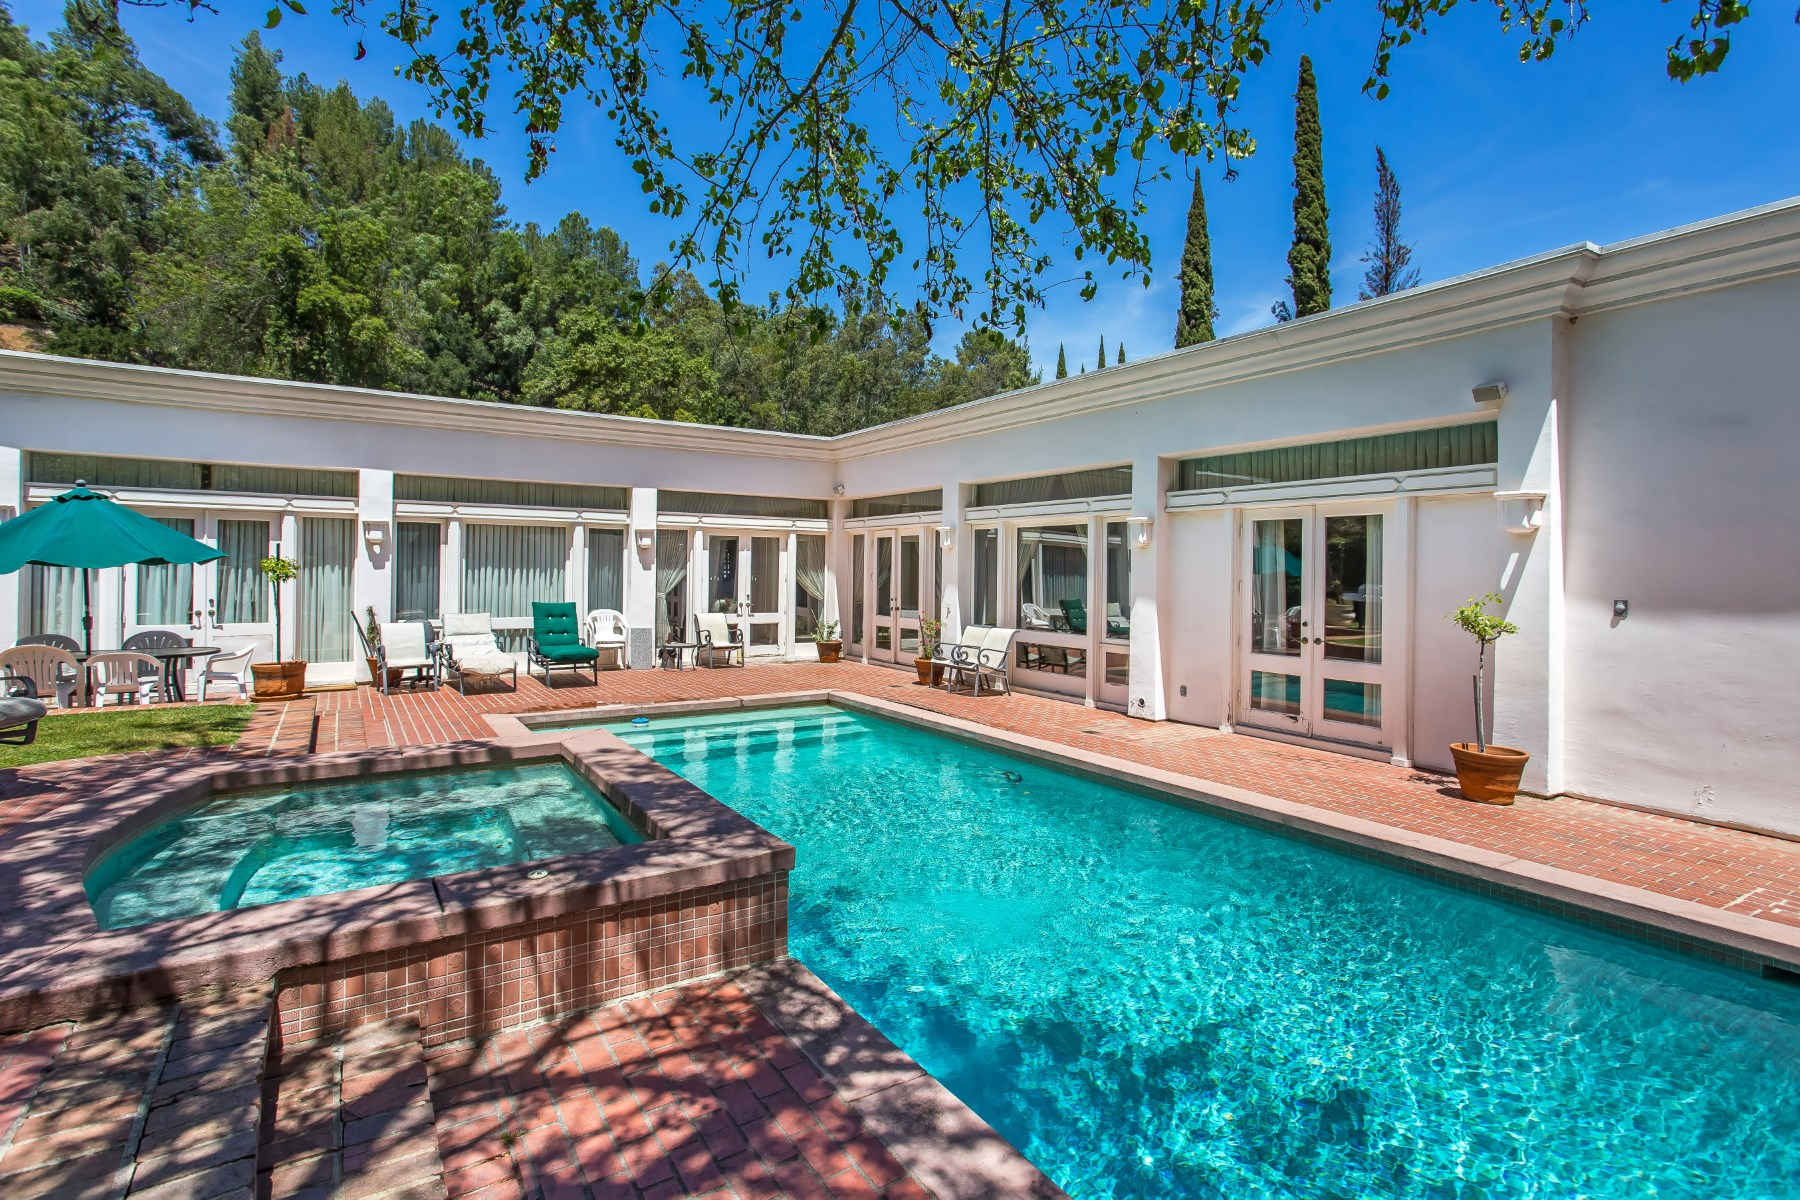 Single Family Home for Sale at Prime BHPO Mediterranean 9988 Liebe Drive Beverly Hills, California, 90210 United States